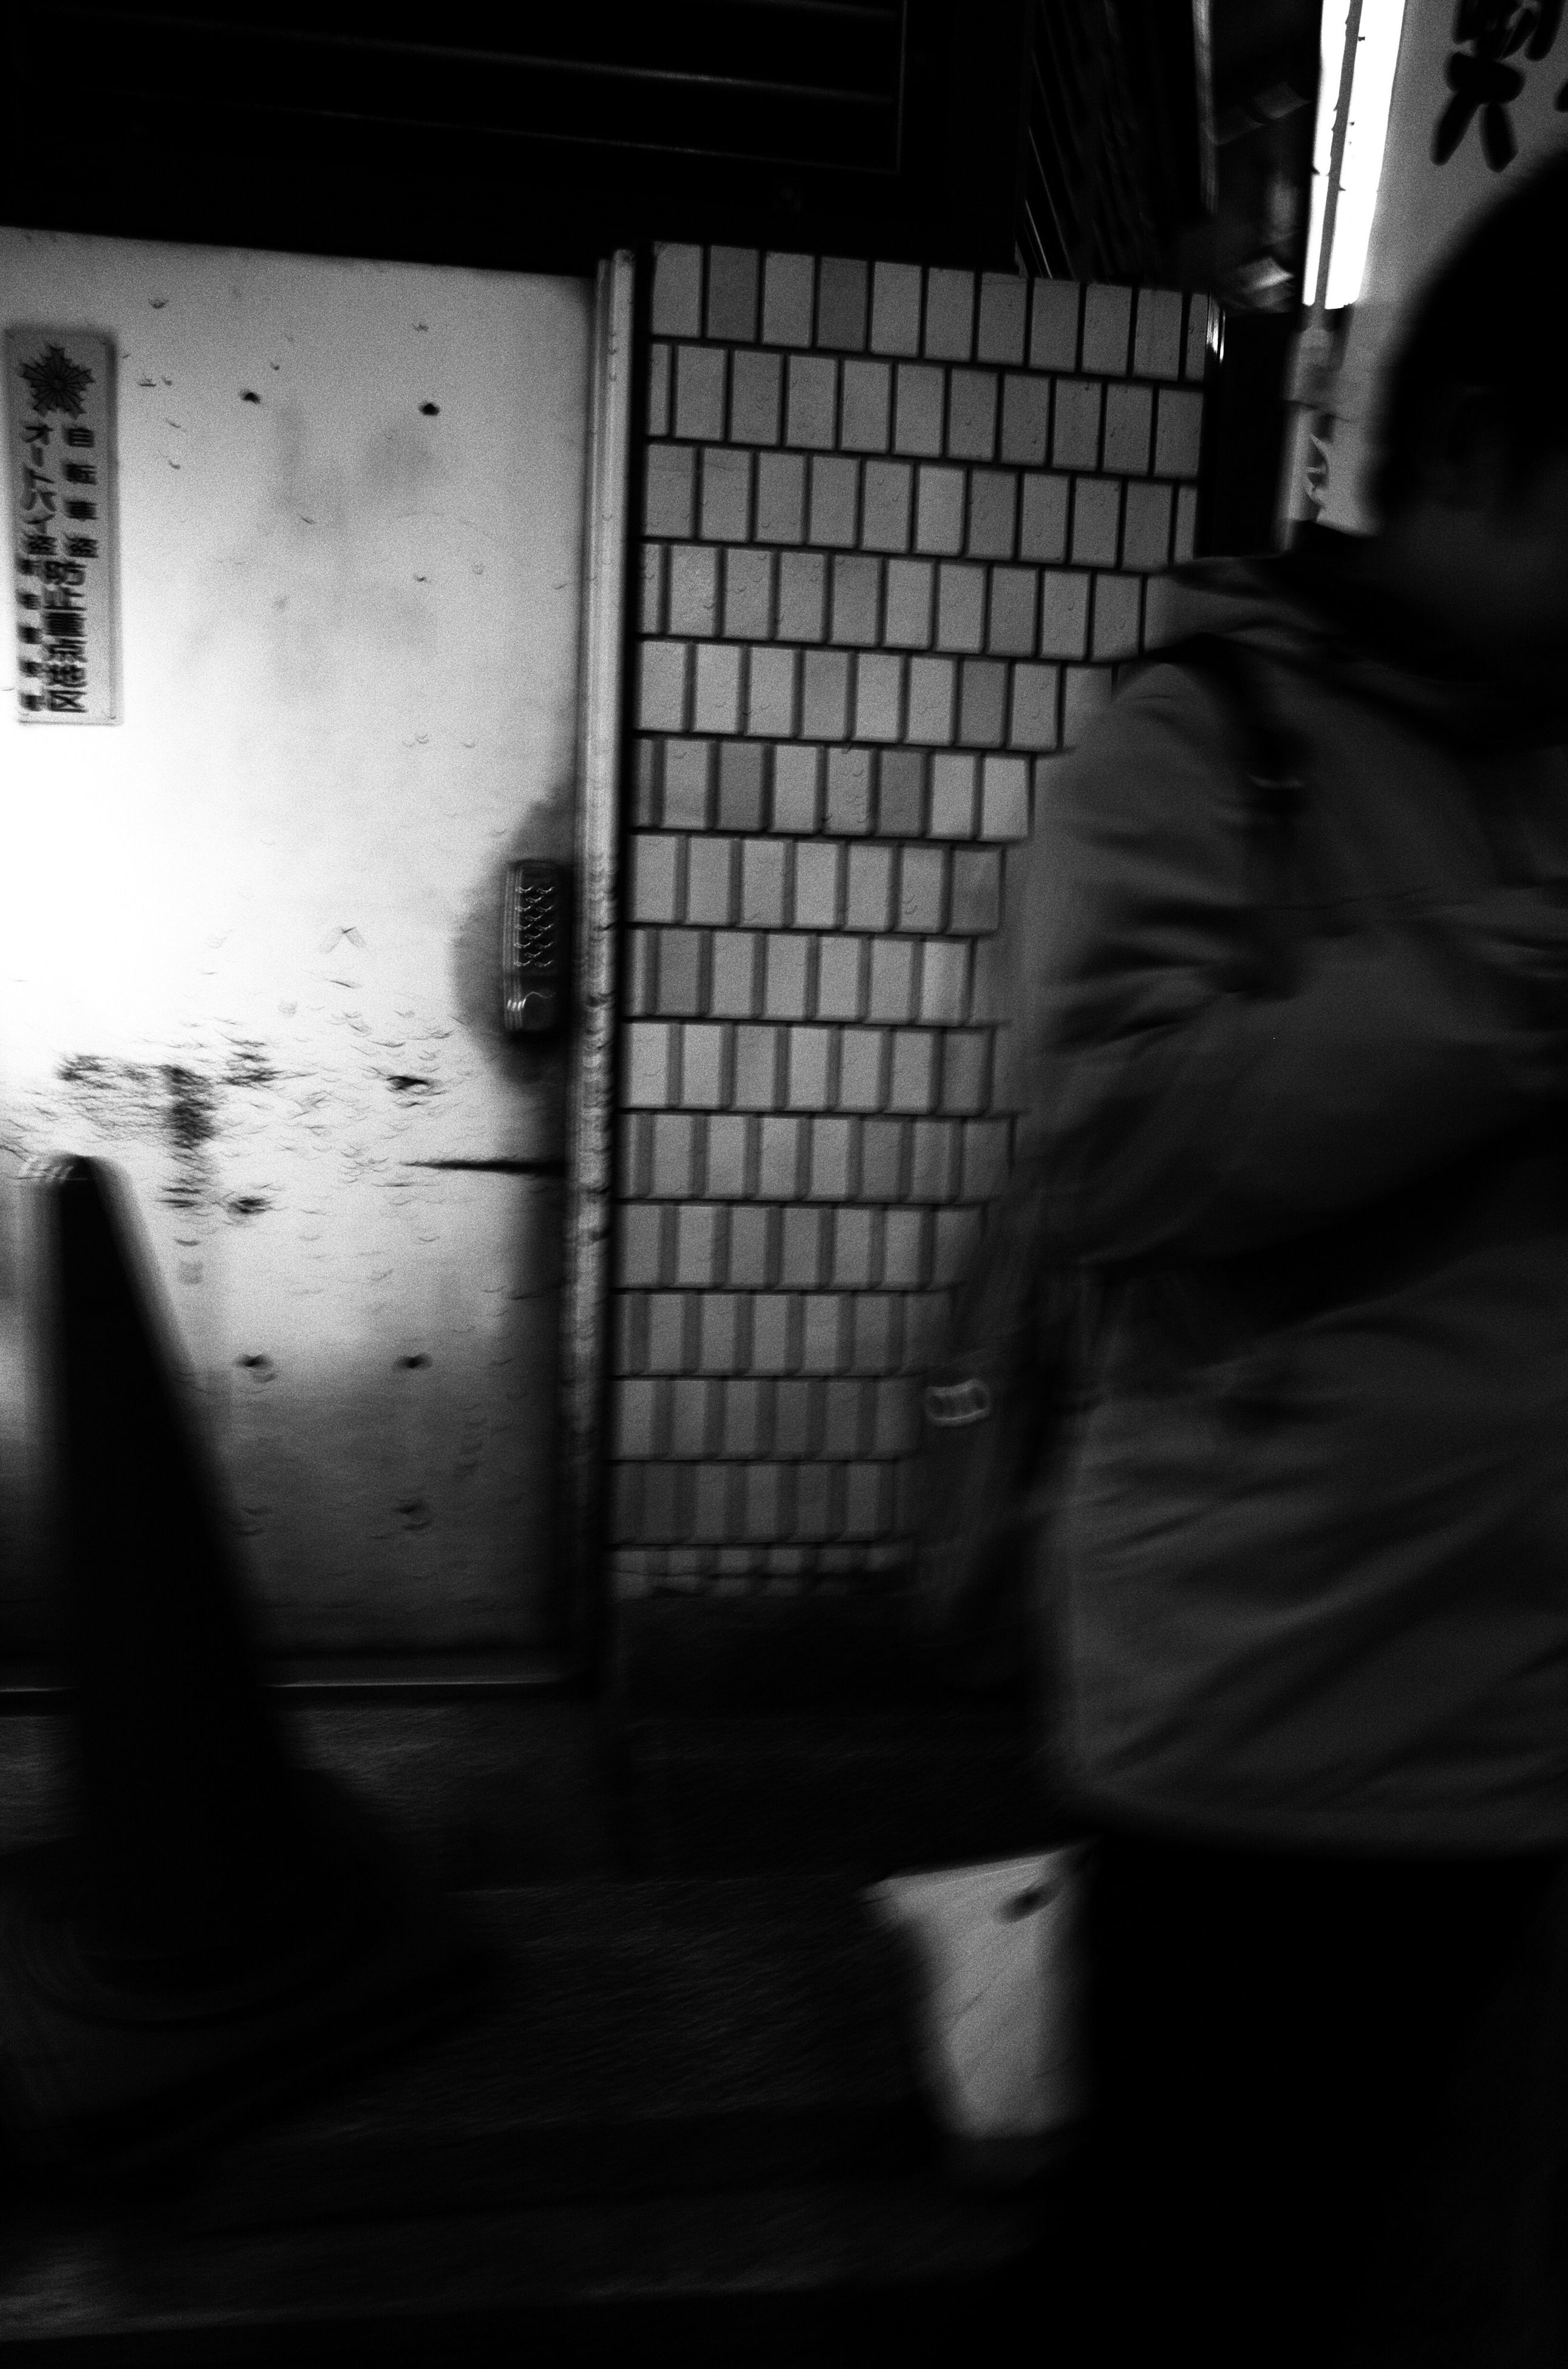 real people, blurred motion, indoors, one person, lifestyles, walking, motion, women, day, architecture, people